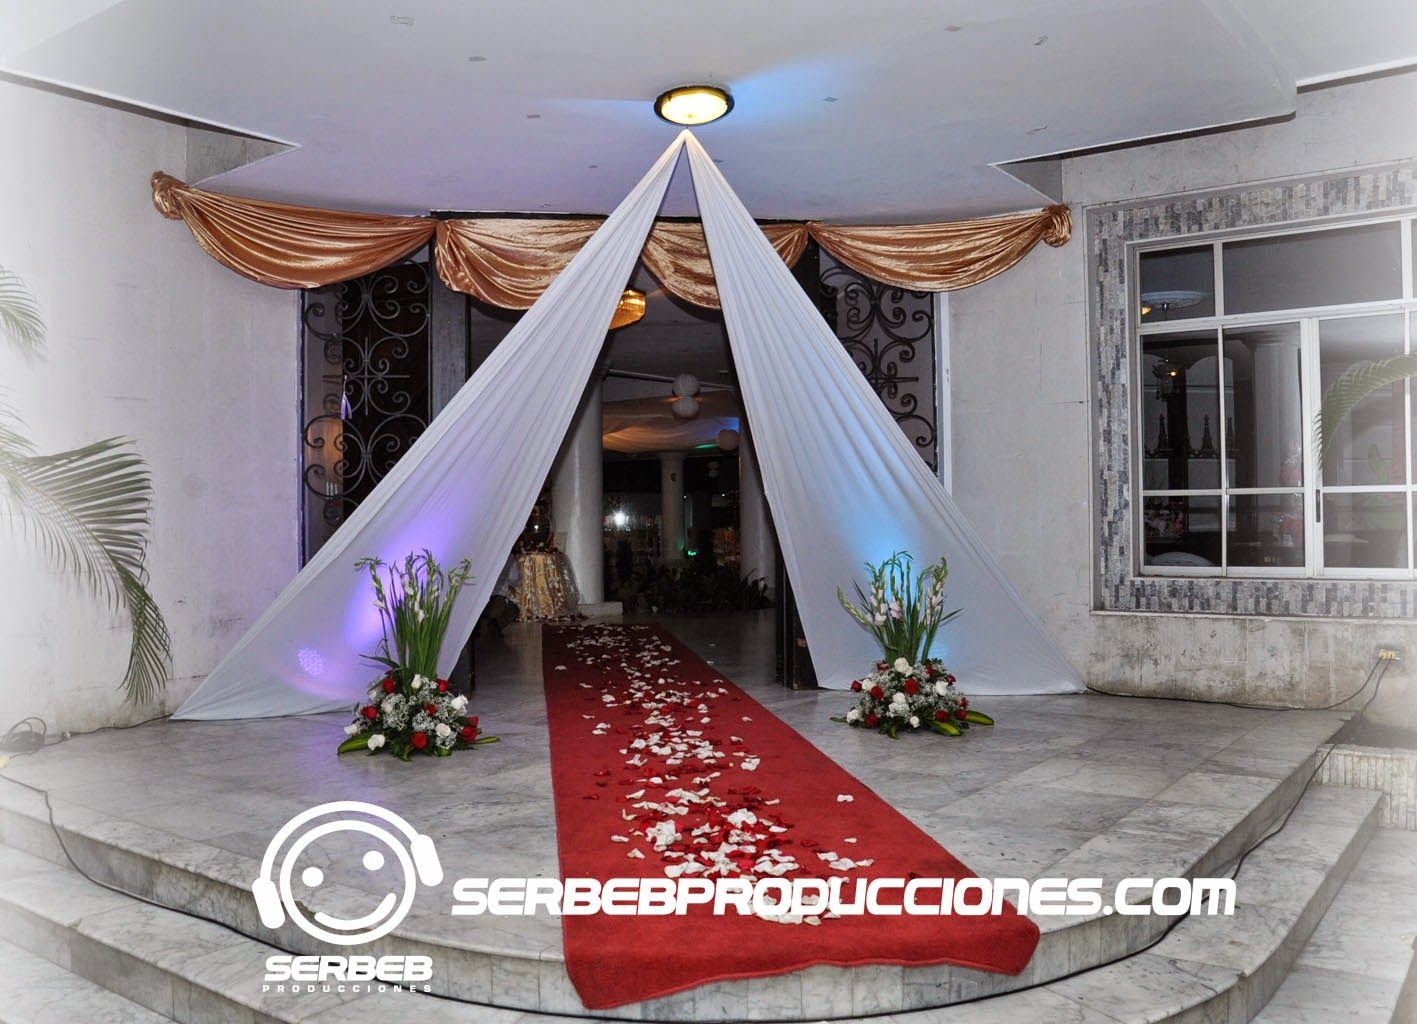 Salon De Bodas Decoracion De Salon De Bodas 2015 Buscar Con Google